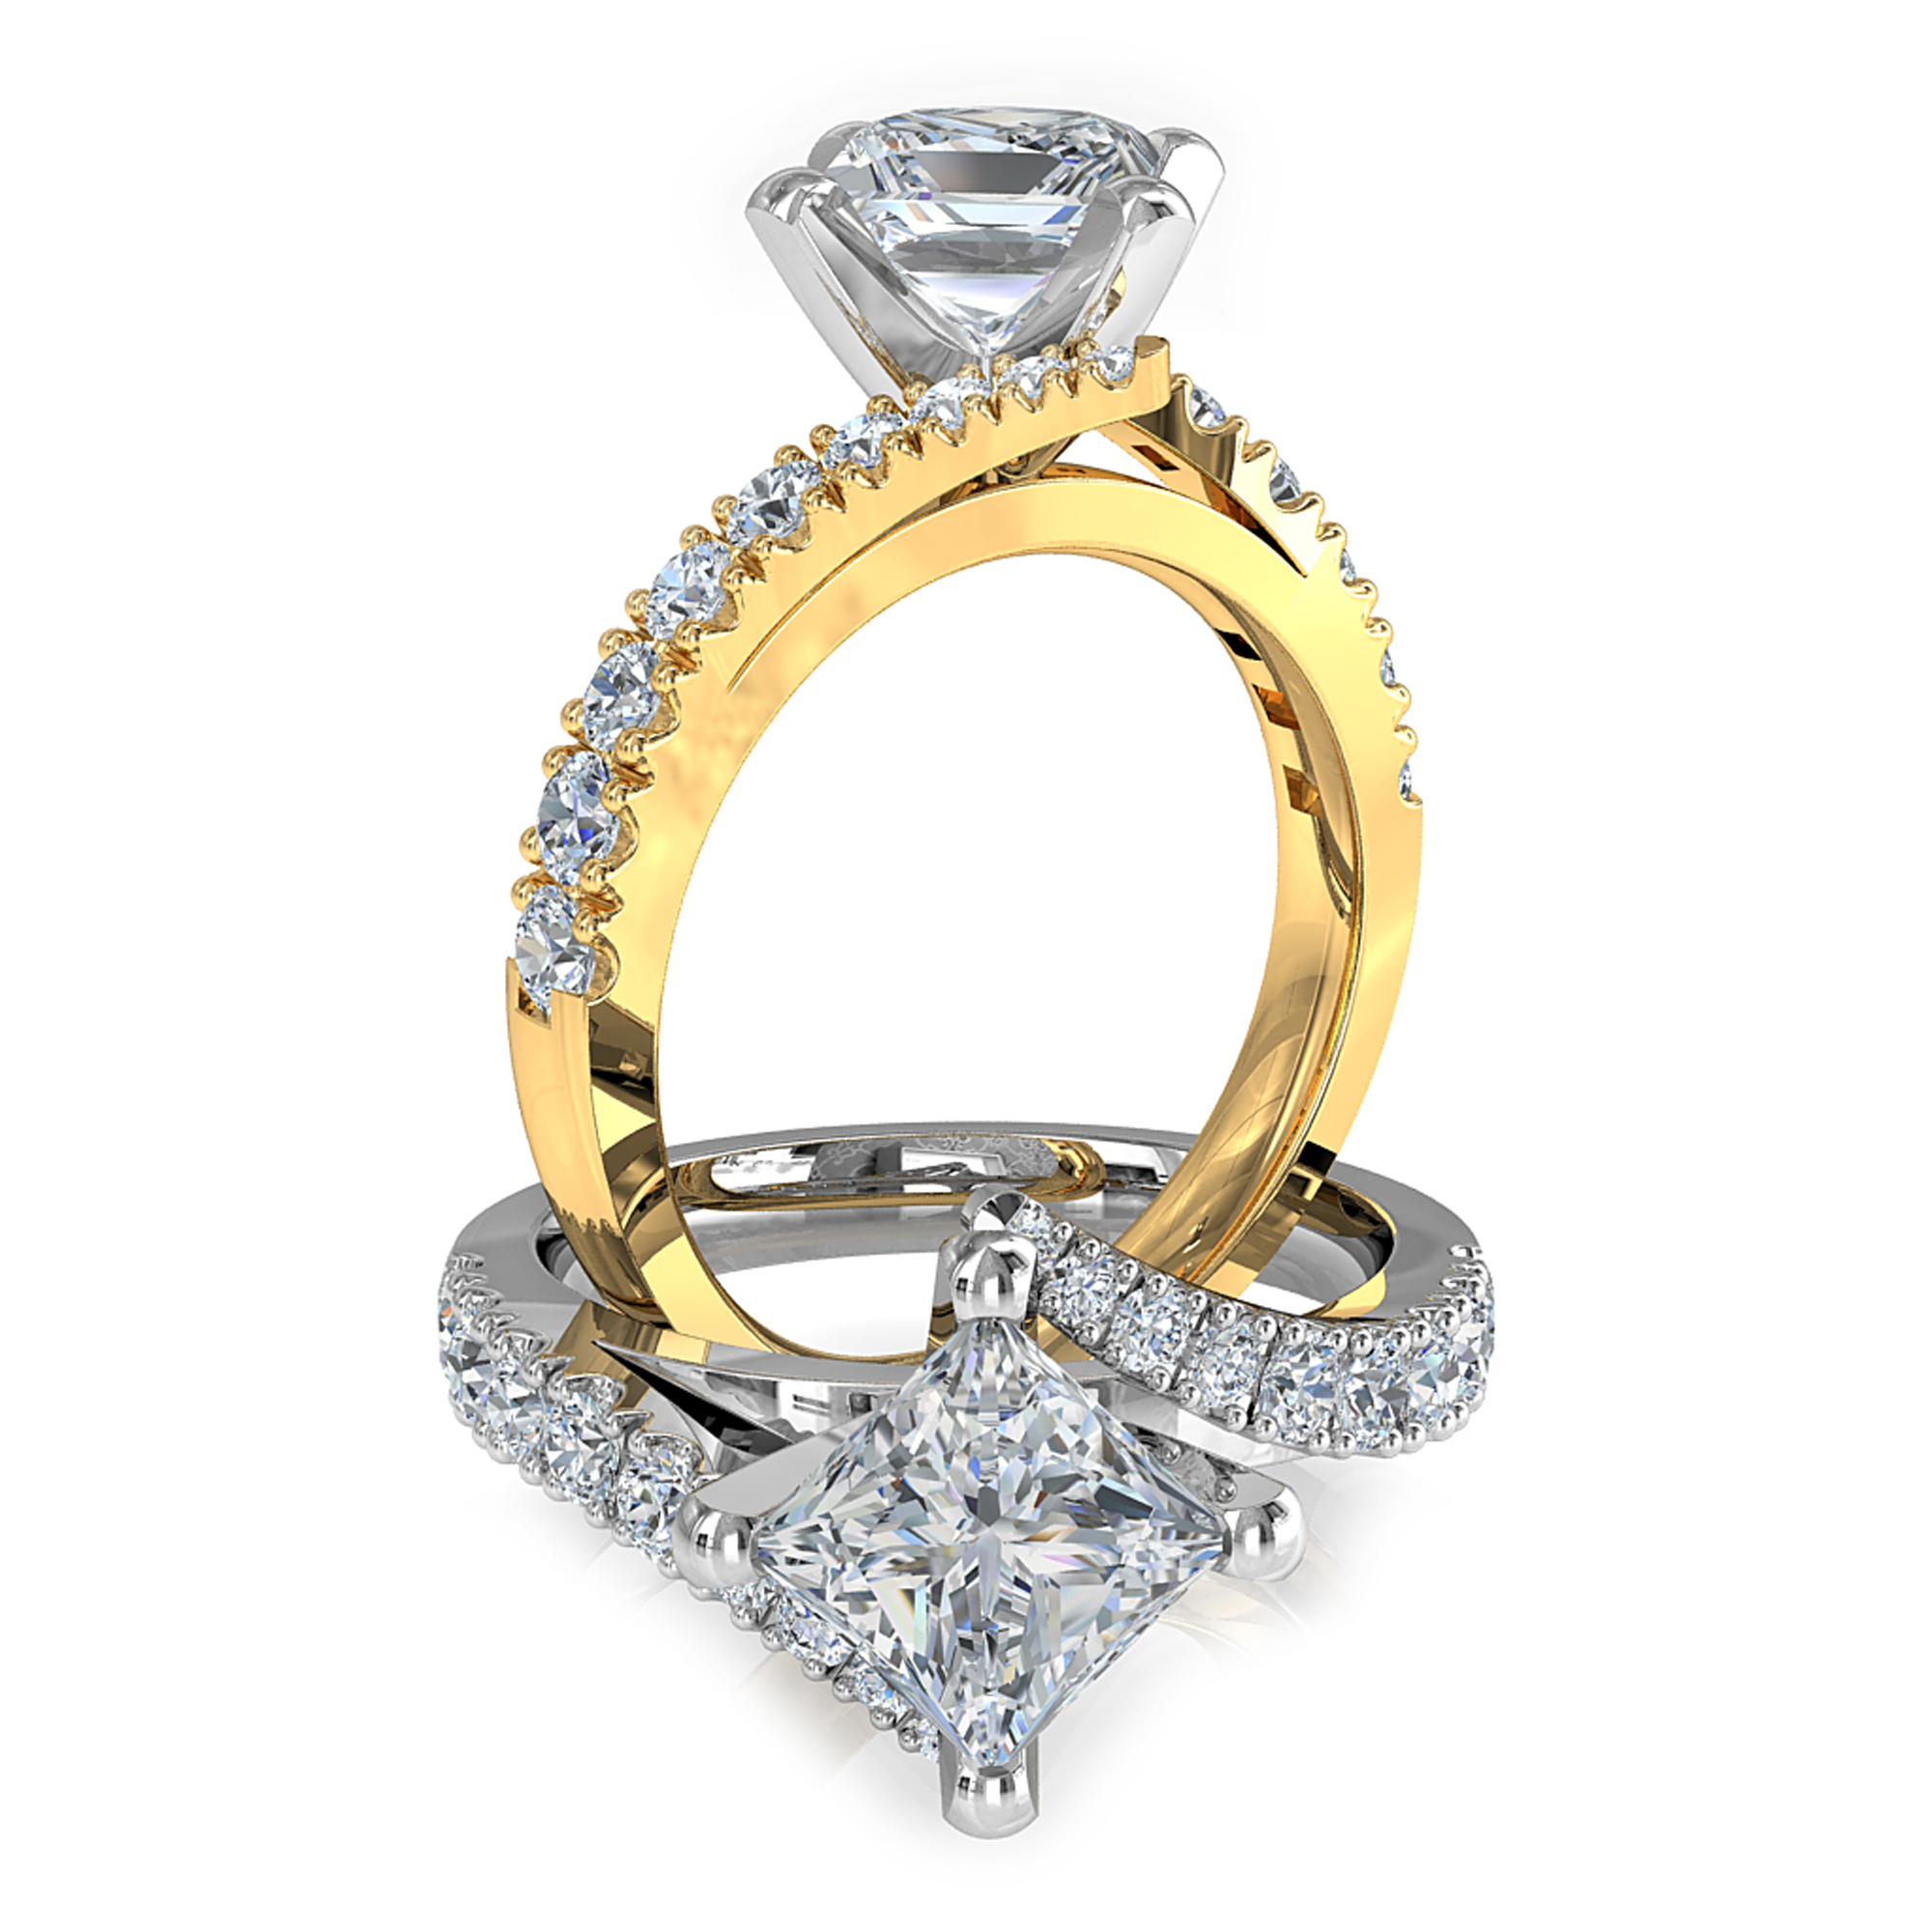 Princess Cut Solitaire Diamond Engagement Ring, 4 Square Offset Claws on a with Sweeping Cut Claw Band.